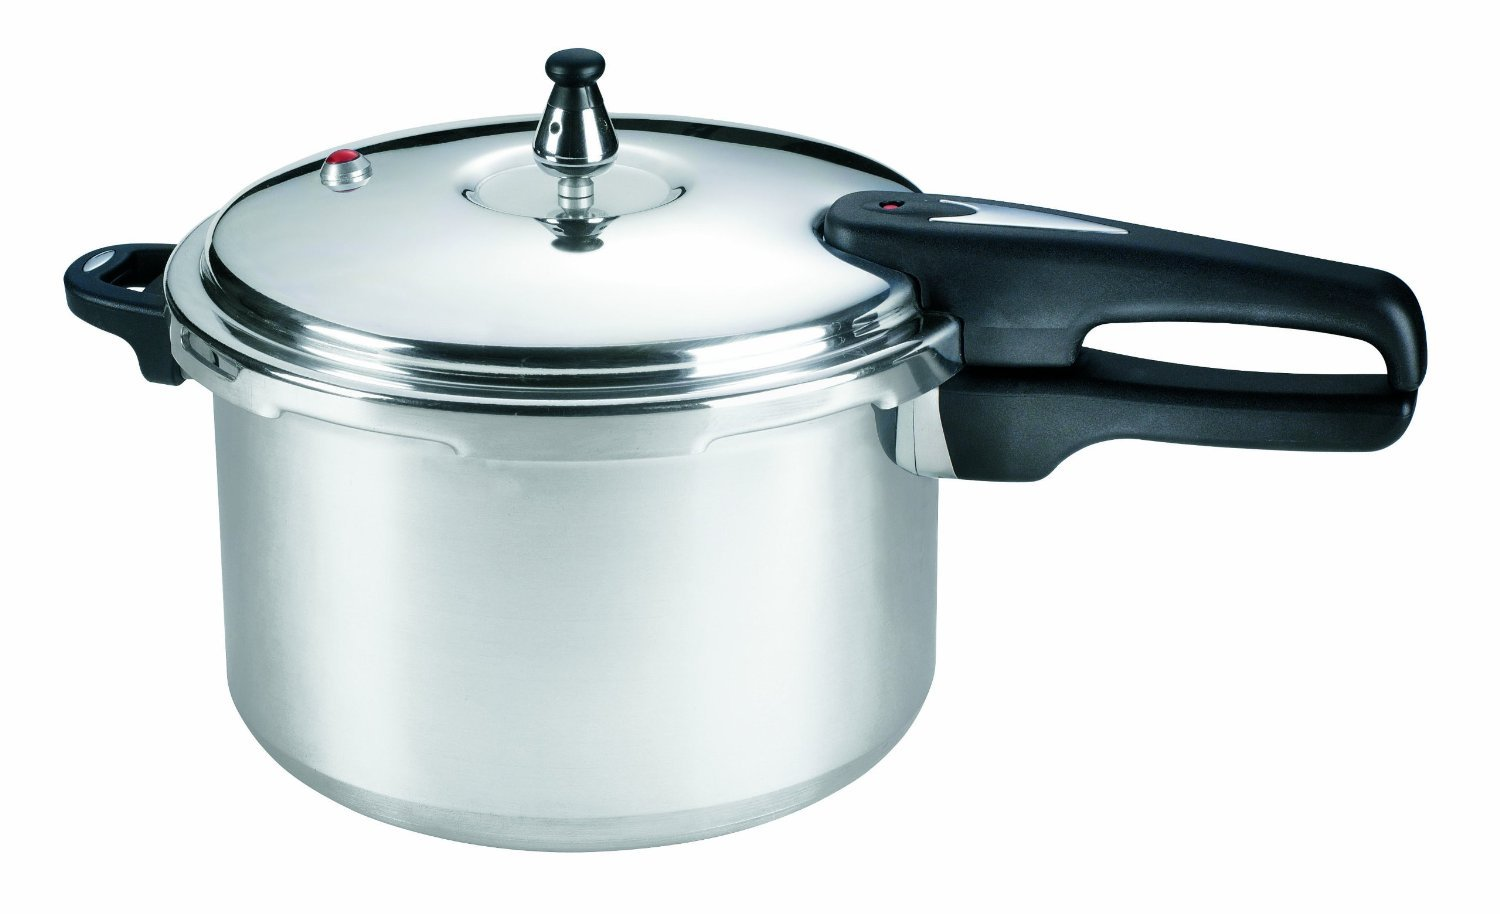 Mirro 92180A Polished Aluminum 10-PSI Pressure Cooker Cookware, 8-Quart, Silver